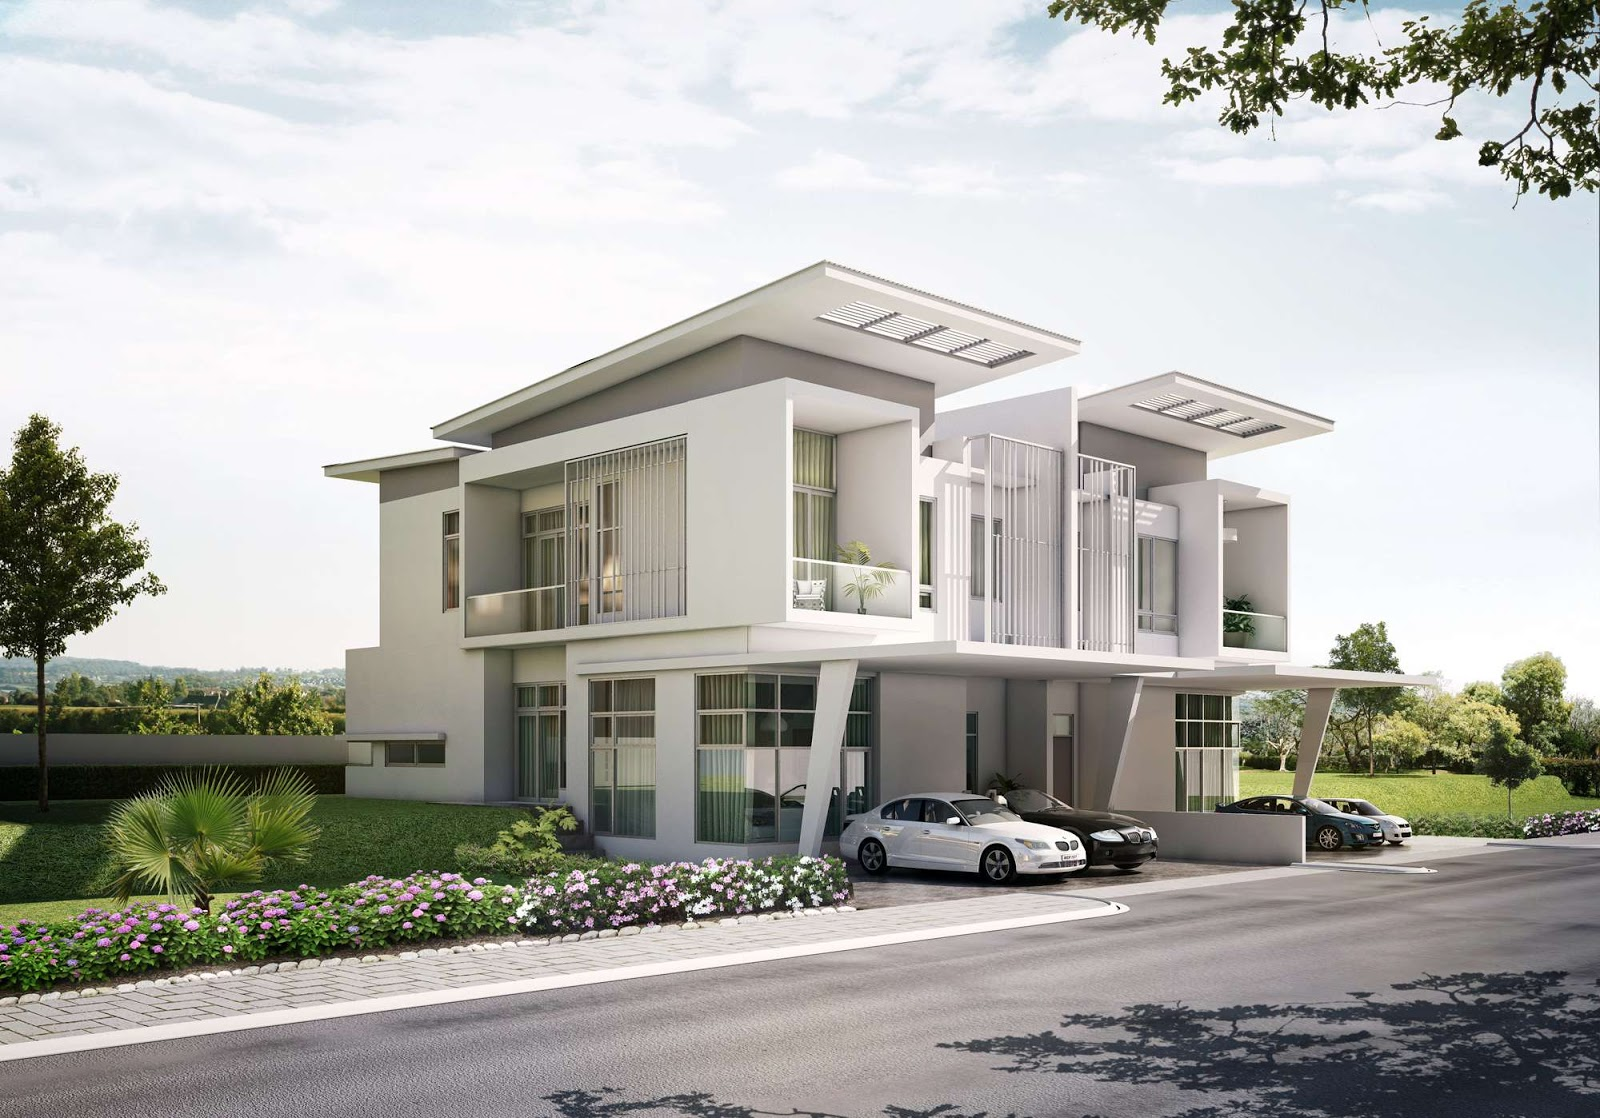 New home designs latest singapore modern homes exterior for New home exterior ideas